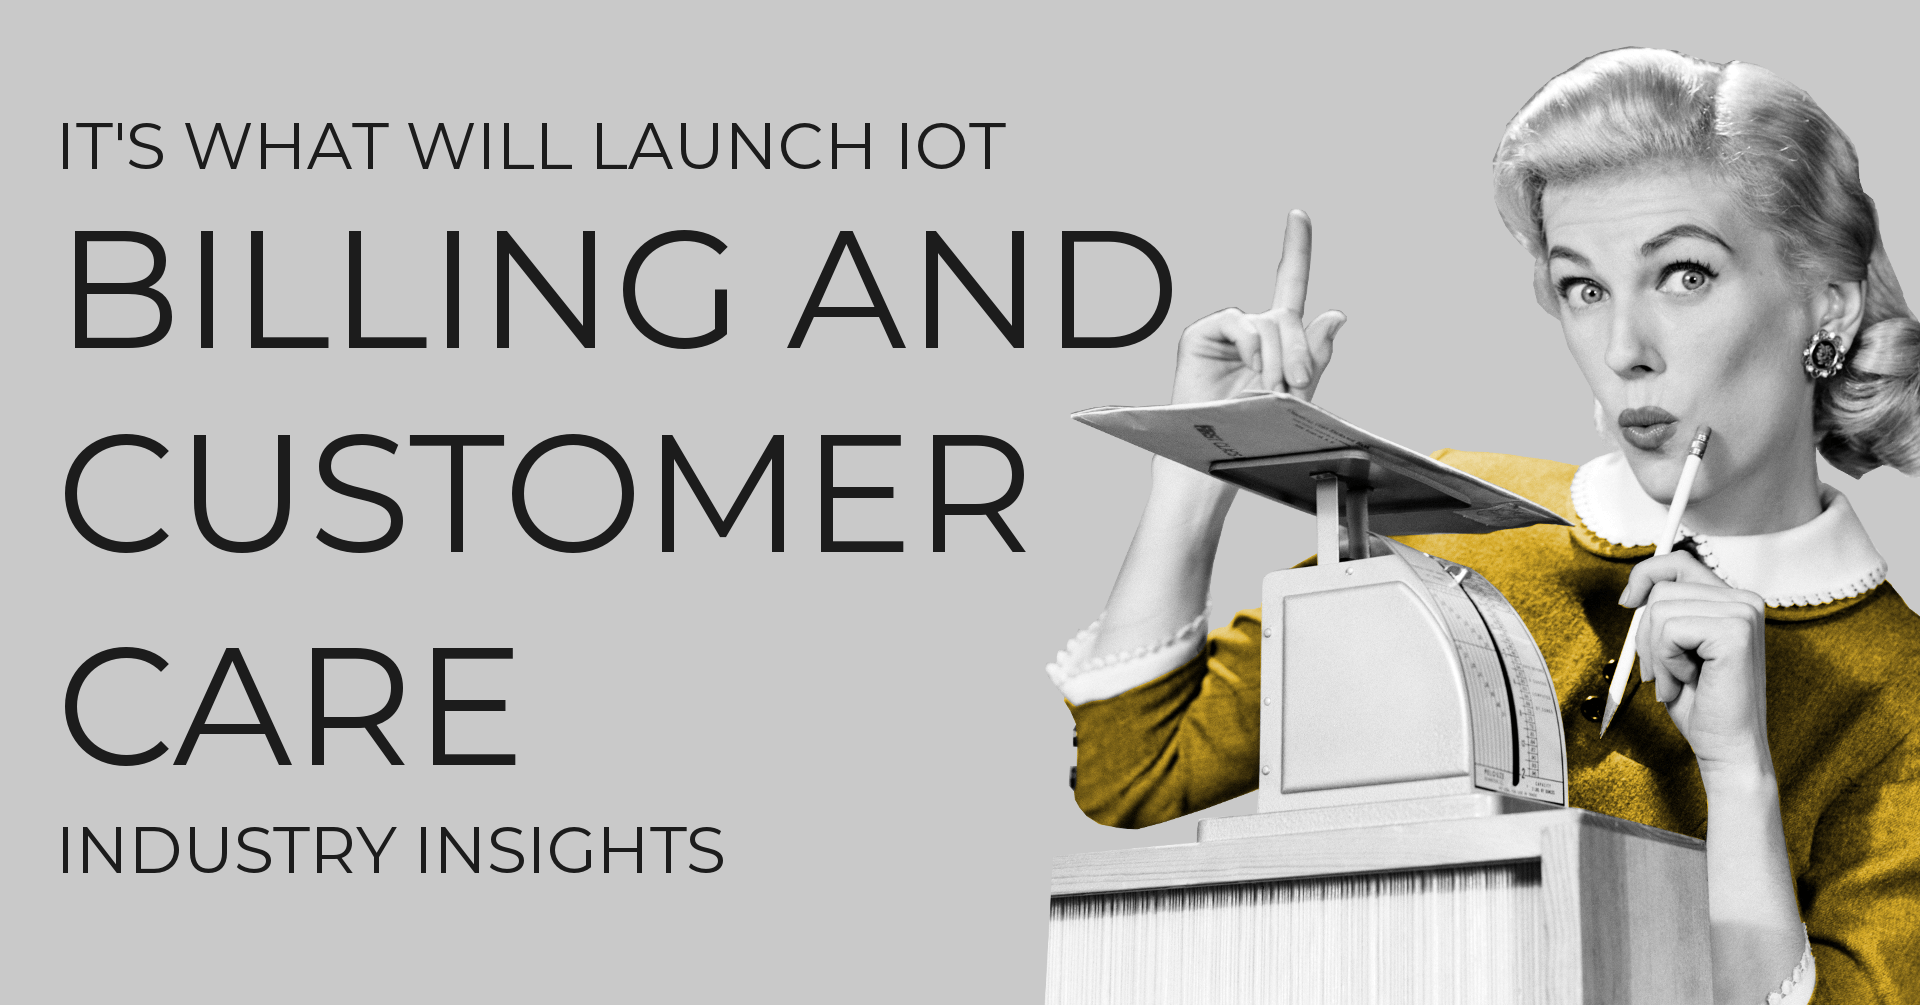 Billing and Customer Care: It's What Will Launch IoT to the Next Level